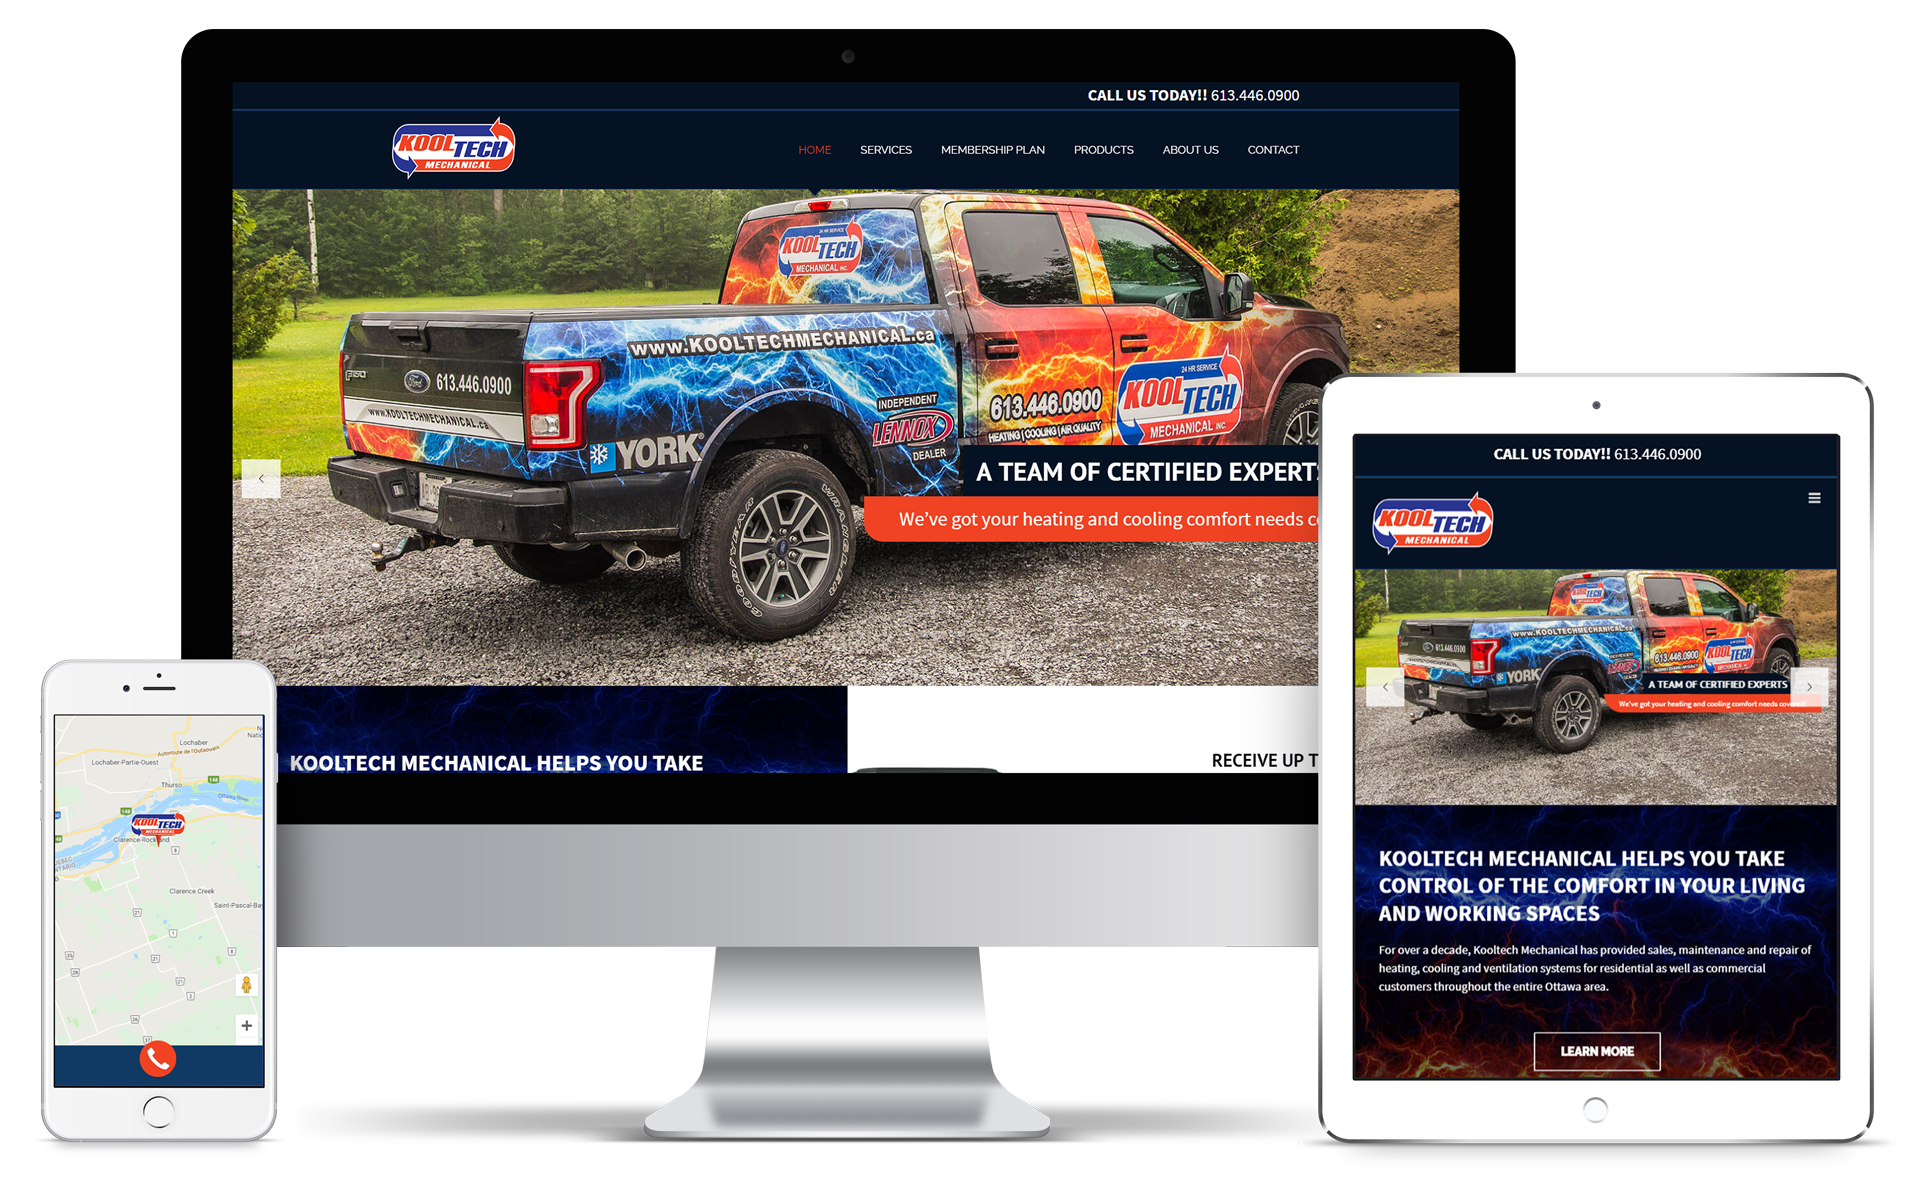 Website Redesign for Kooltech Mechanical Heating and Cooling